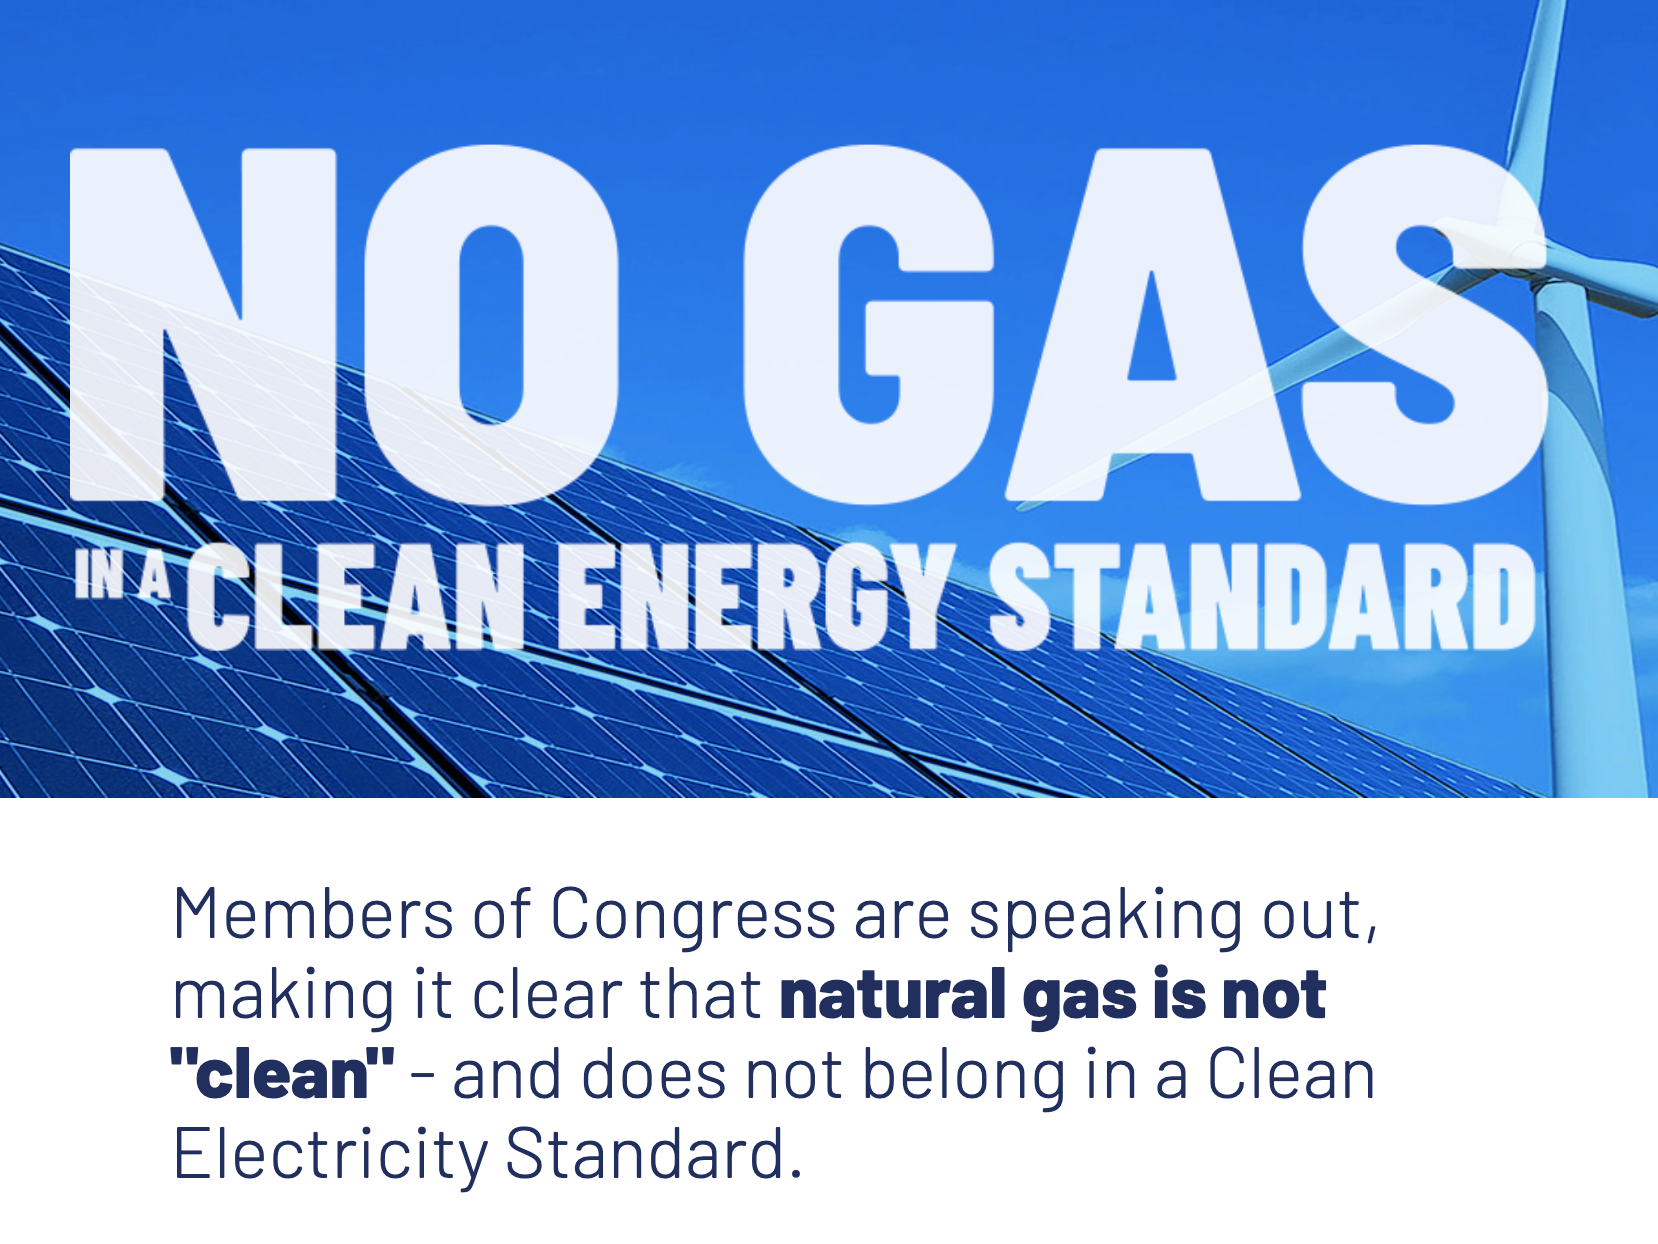 Oil Change U.S. and Partners Launch 'Gas Is Not Clean' Campaign